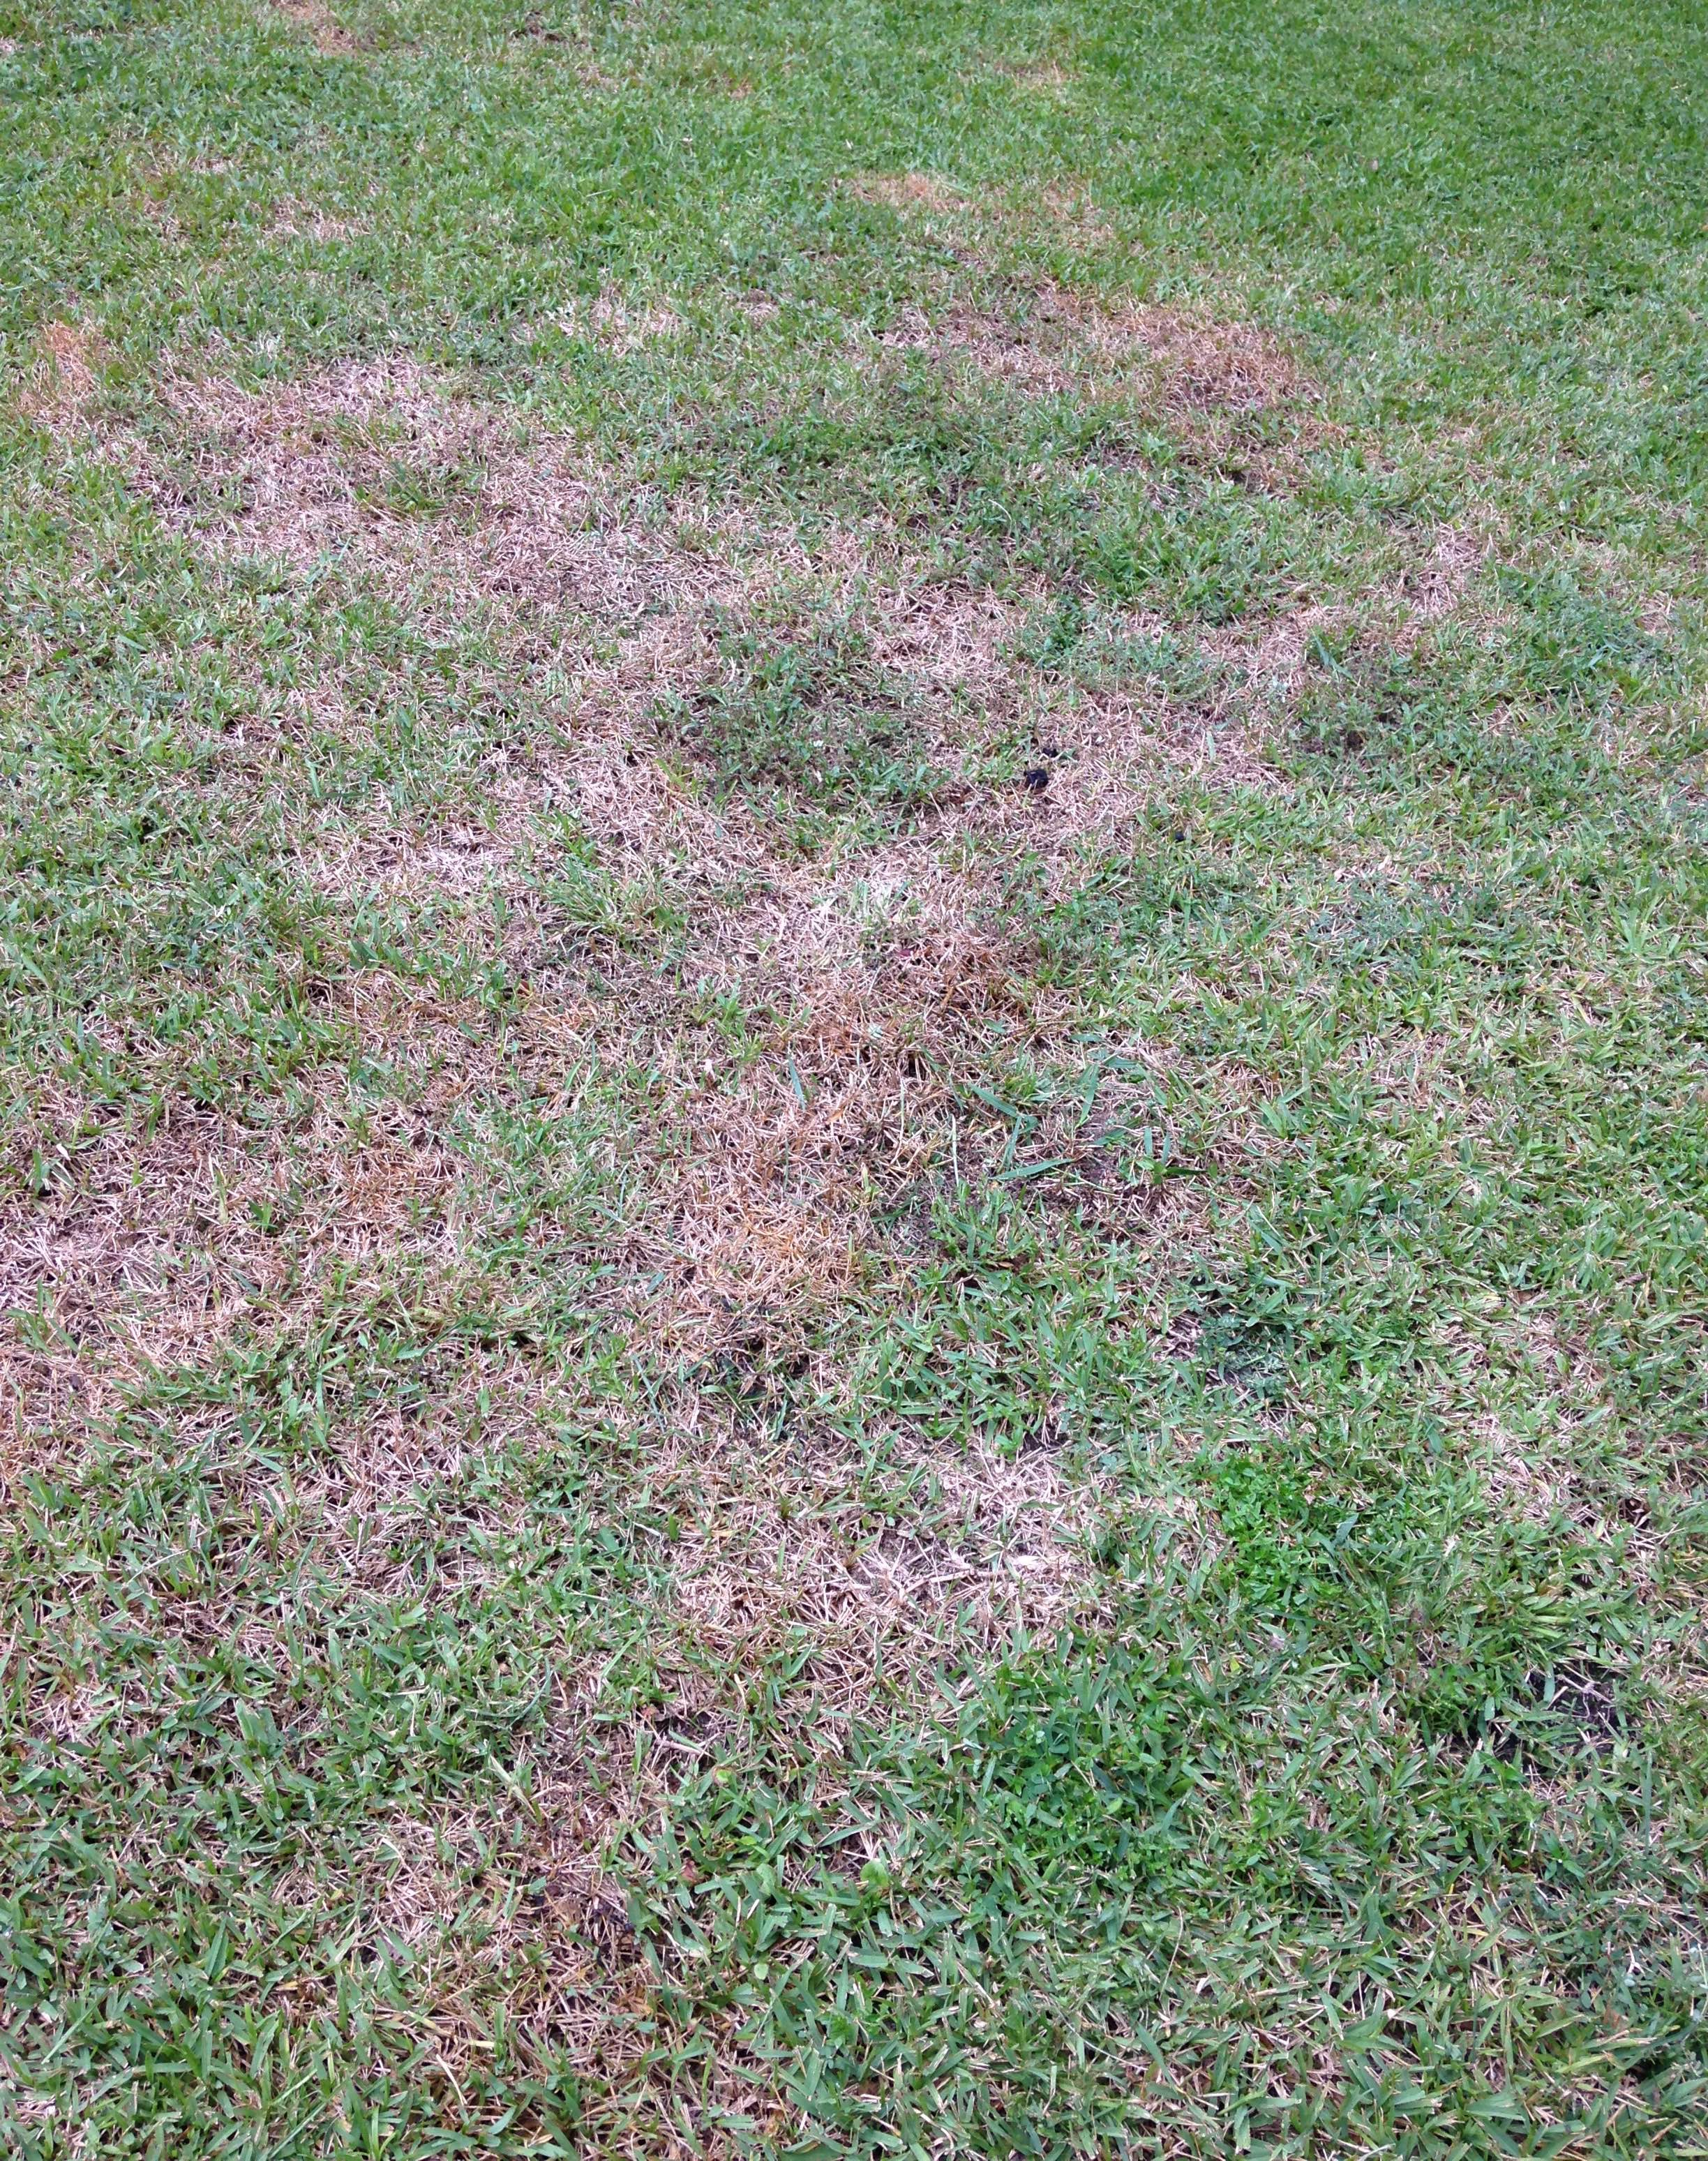 Charleston Residential Landscape Design - Fungus and Armyworms